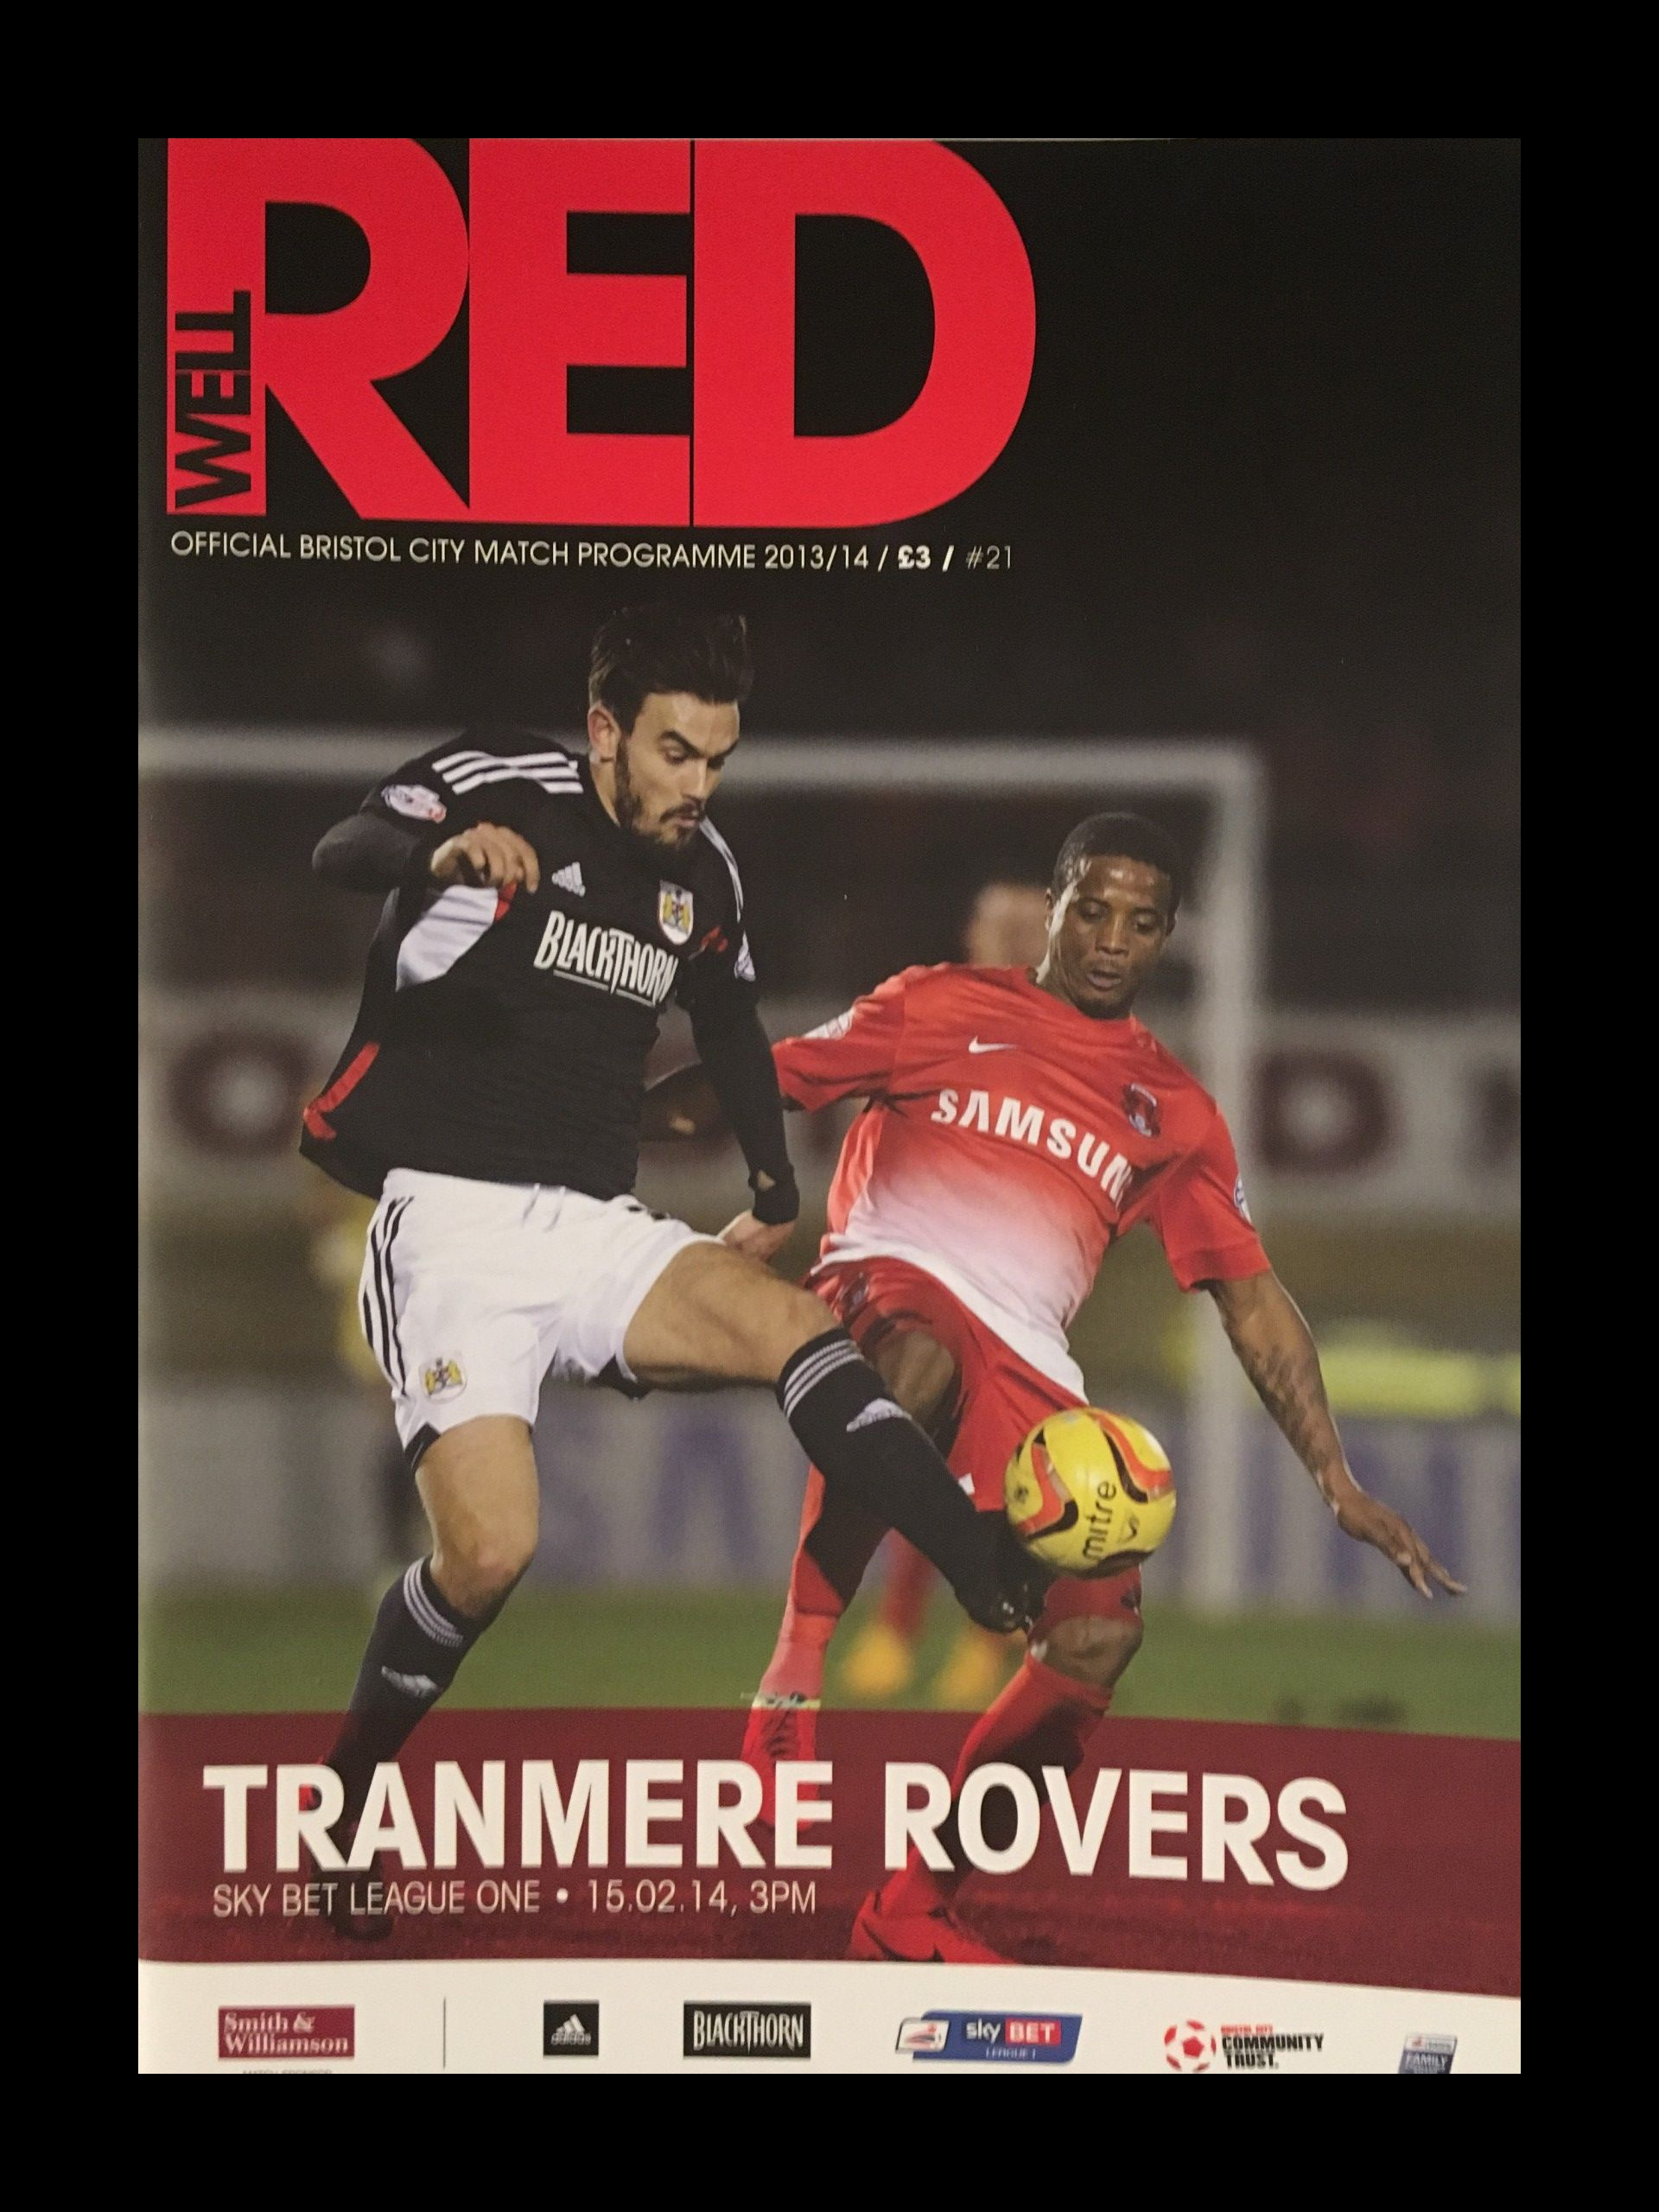 Bristol City v Tranmere Rovers 15-02-2014 Programme